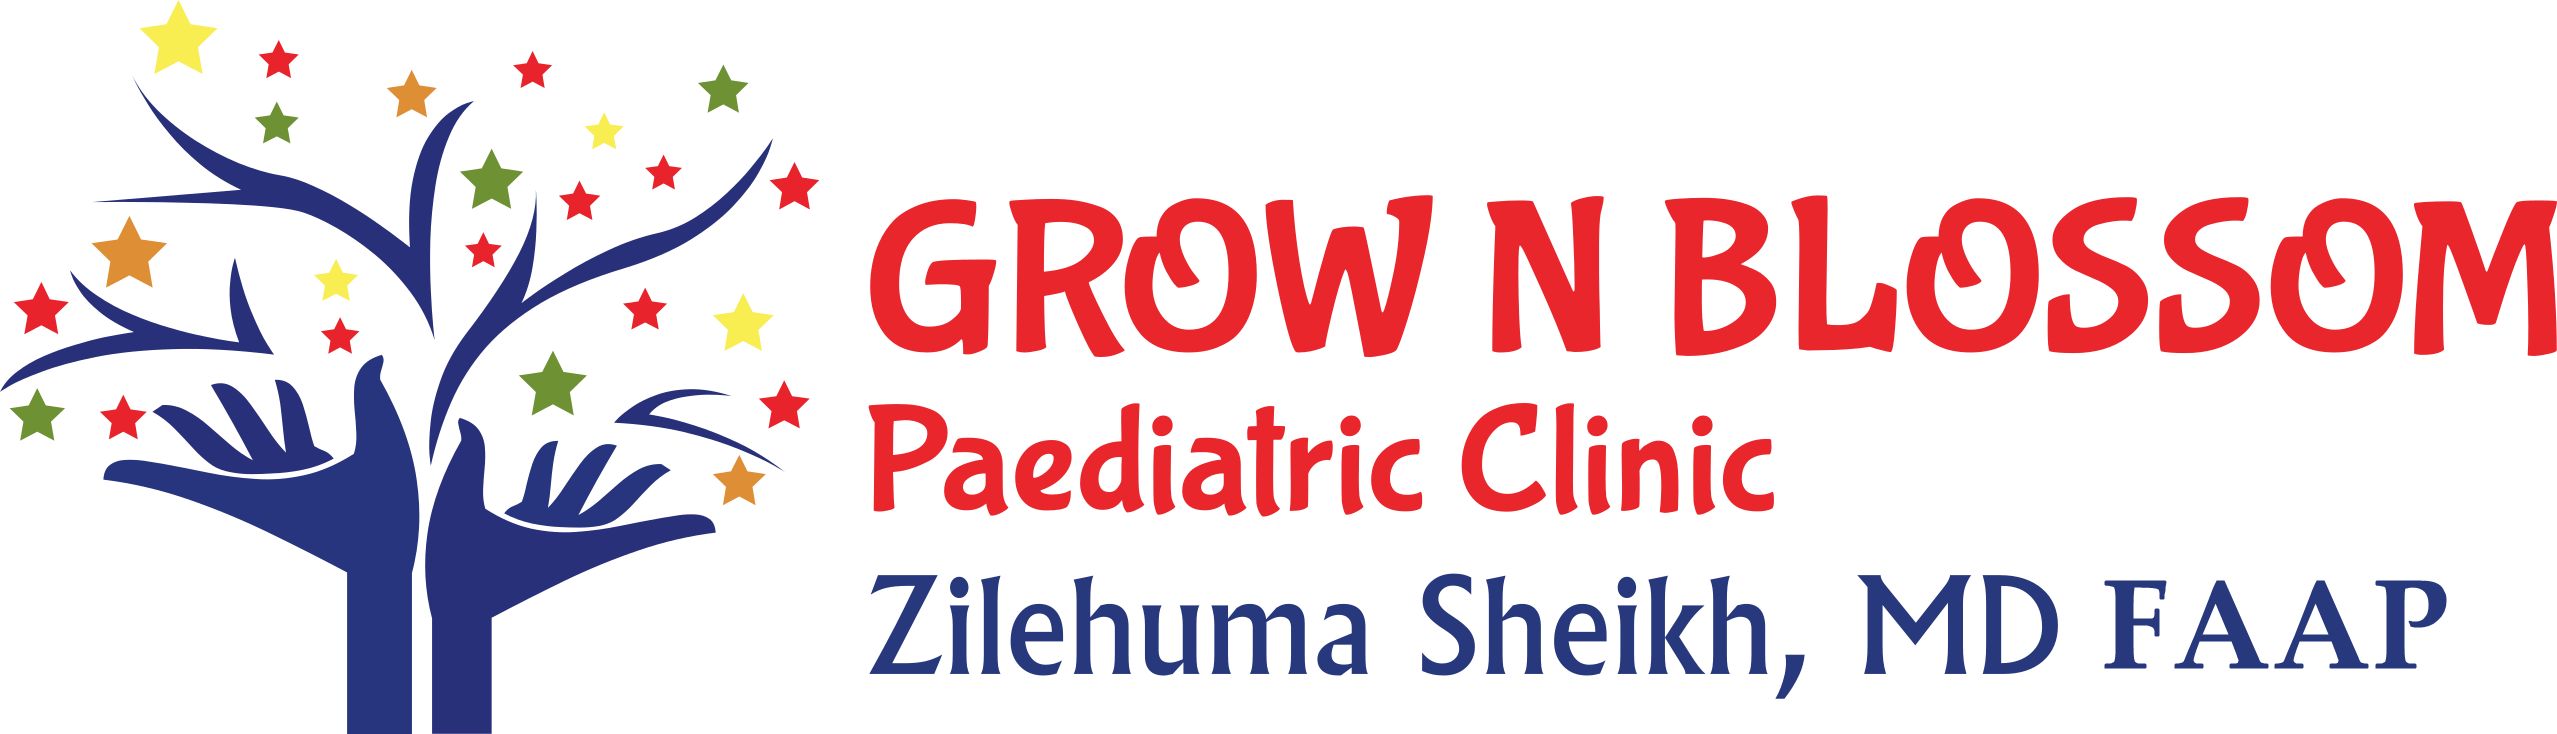 Grown N Blossom Pediatric Clinic